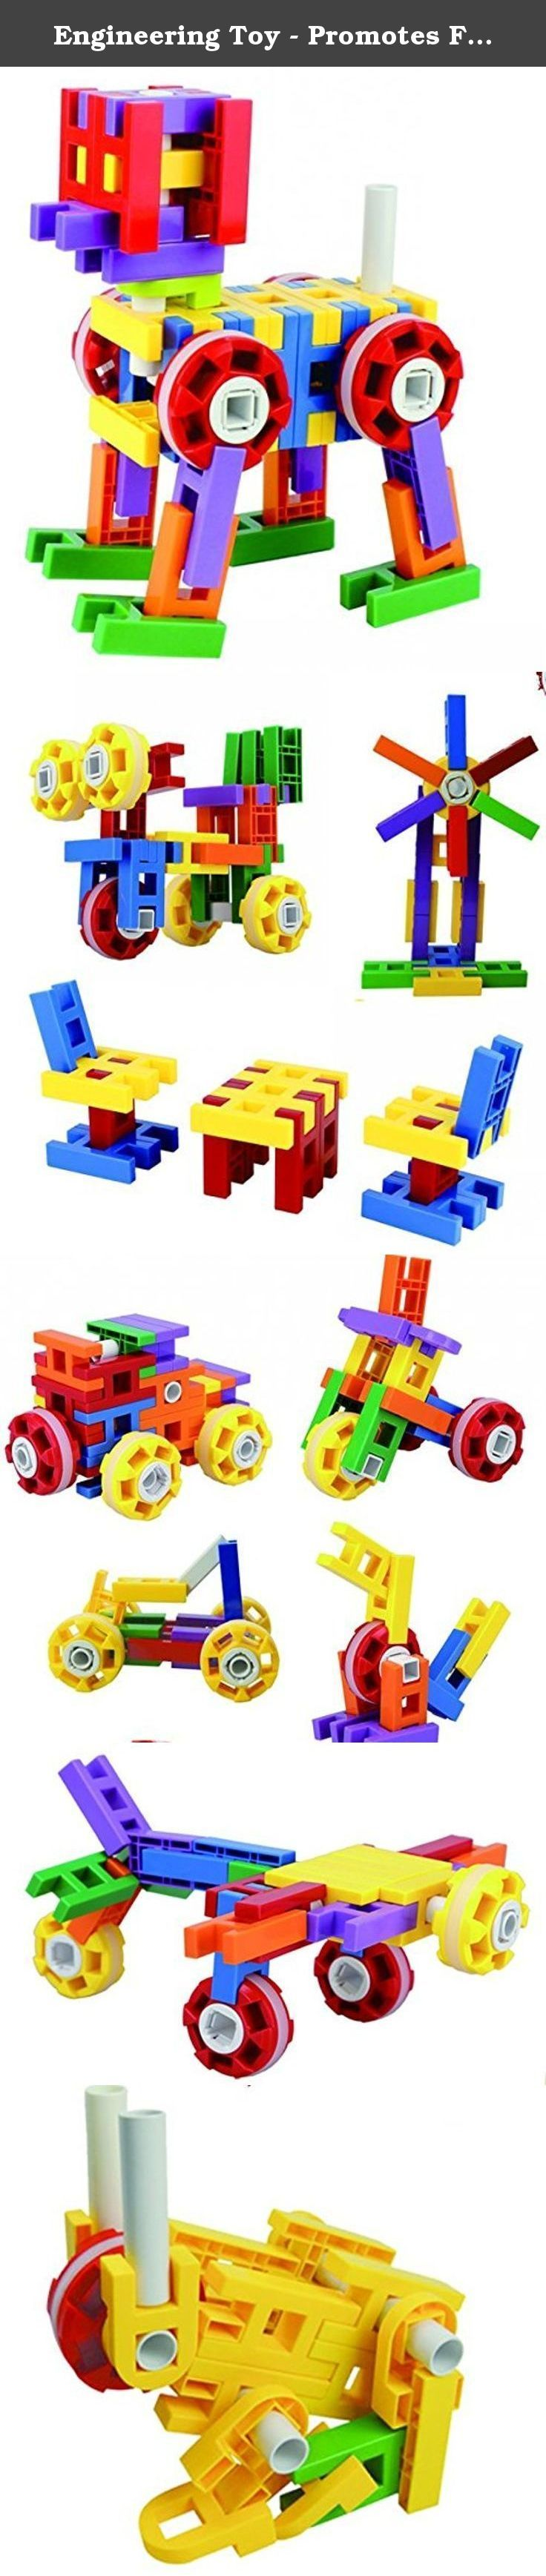 Engineering Toy - Promotes Fine Motor Skills Development - Great Imagination Toy - Boys and Girls-Senior Engineer Blocks. Inspire imagination and creativity with a fun engineering tool built for toddlers! Children love being inspired to think outside the box, using creativity and imagination to solve problems or create solutions.